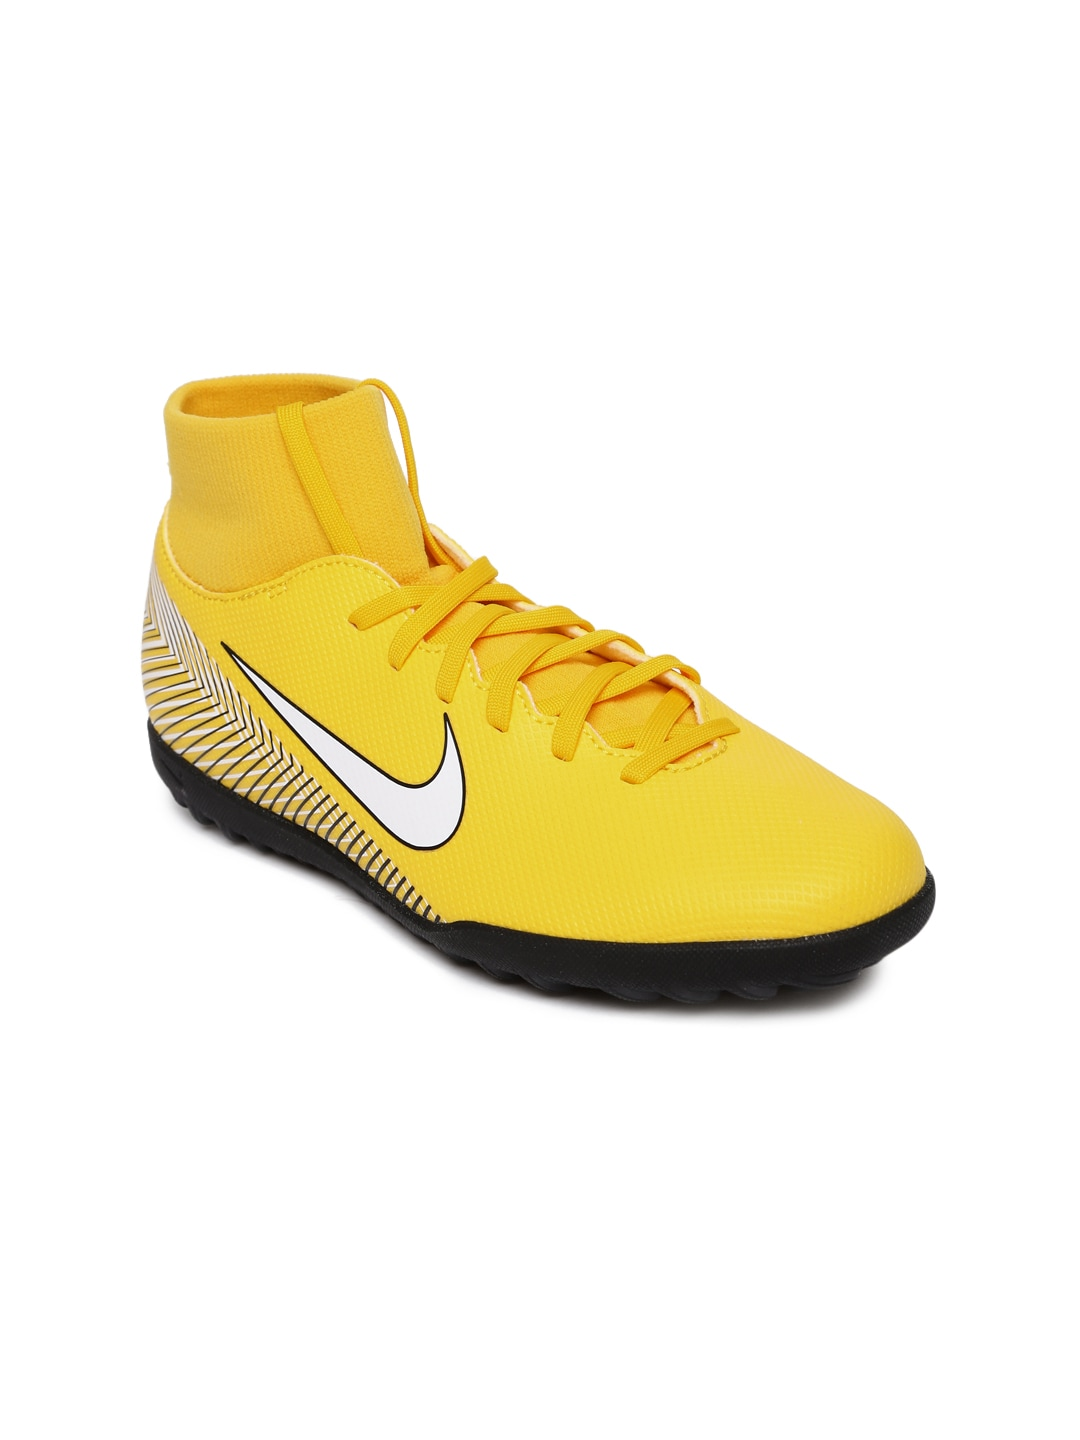 cae104927497 Football Shoes - Buy Football Studs Online for Men   Women in India